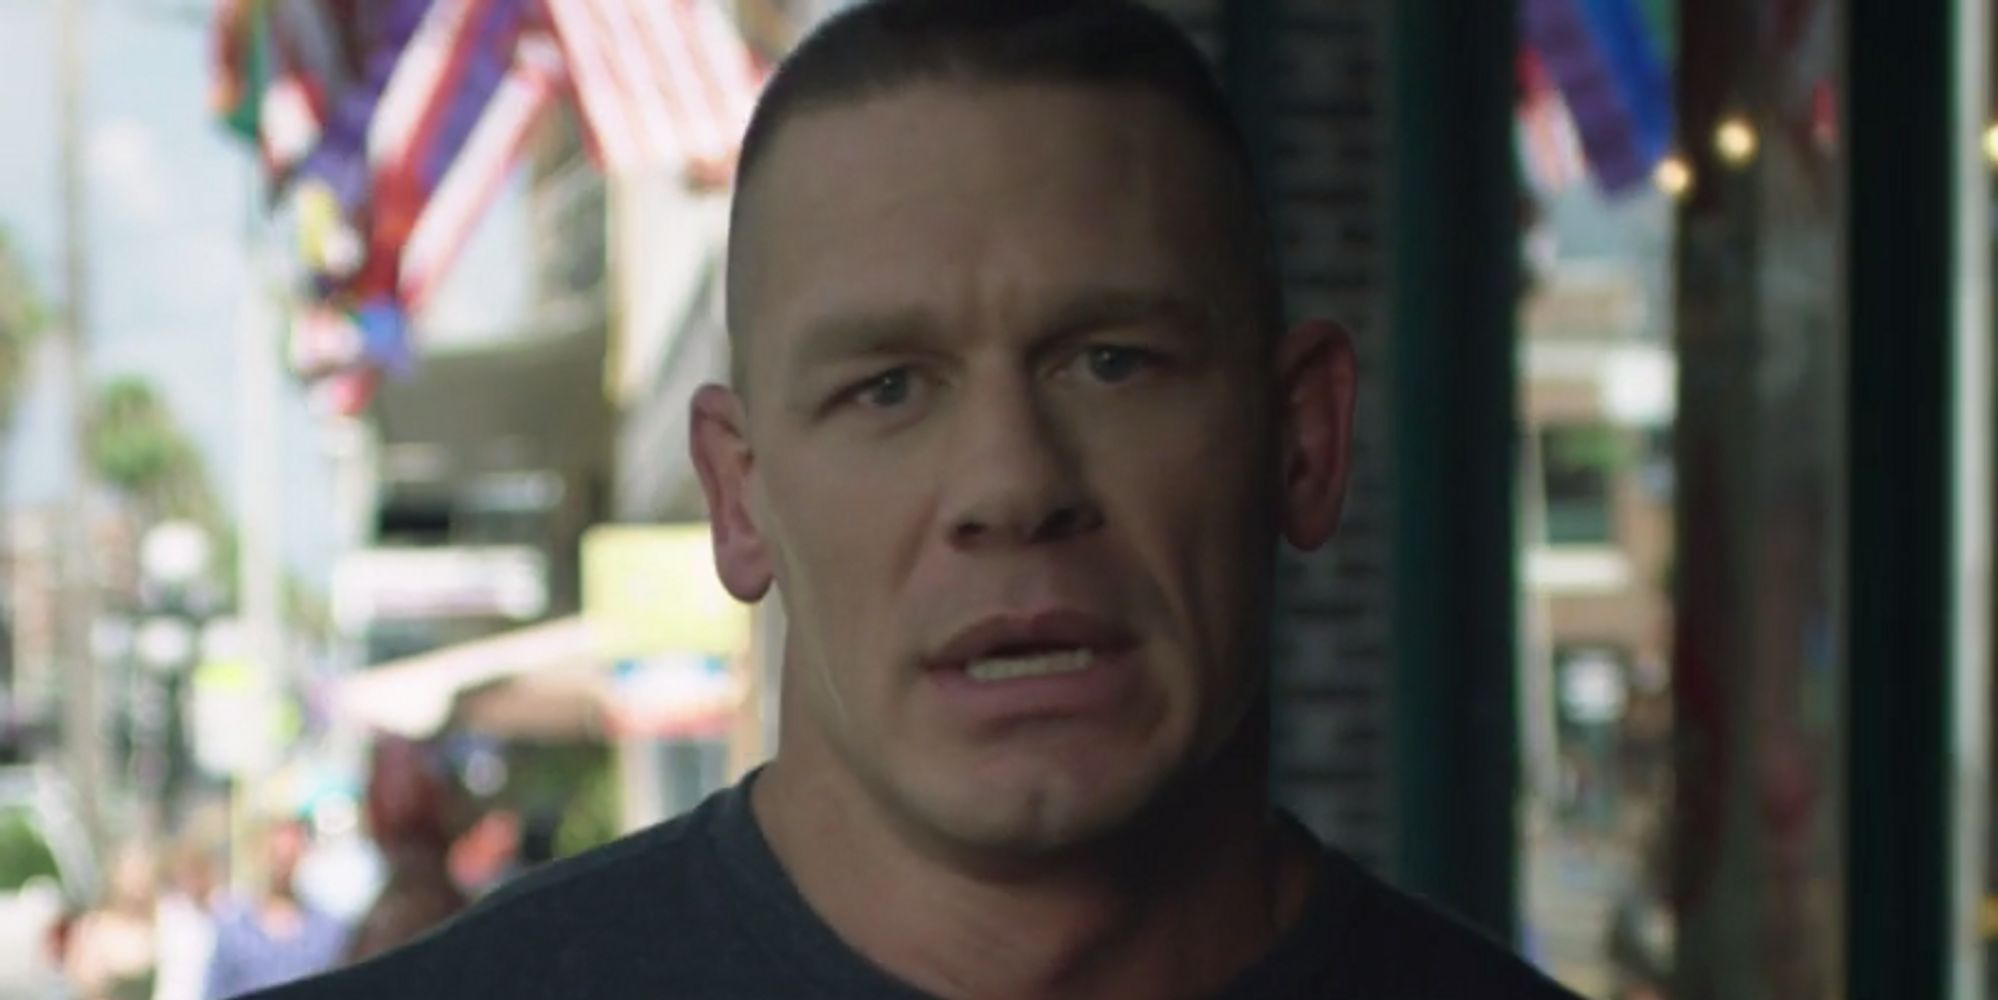 John Cena Perfectly Explains What 'Patriotism' Really Means